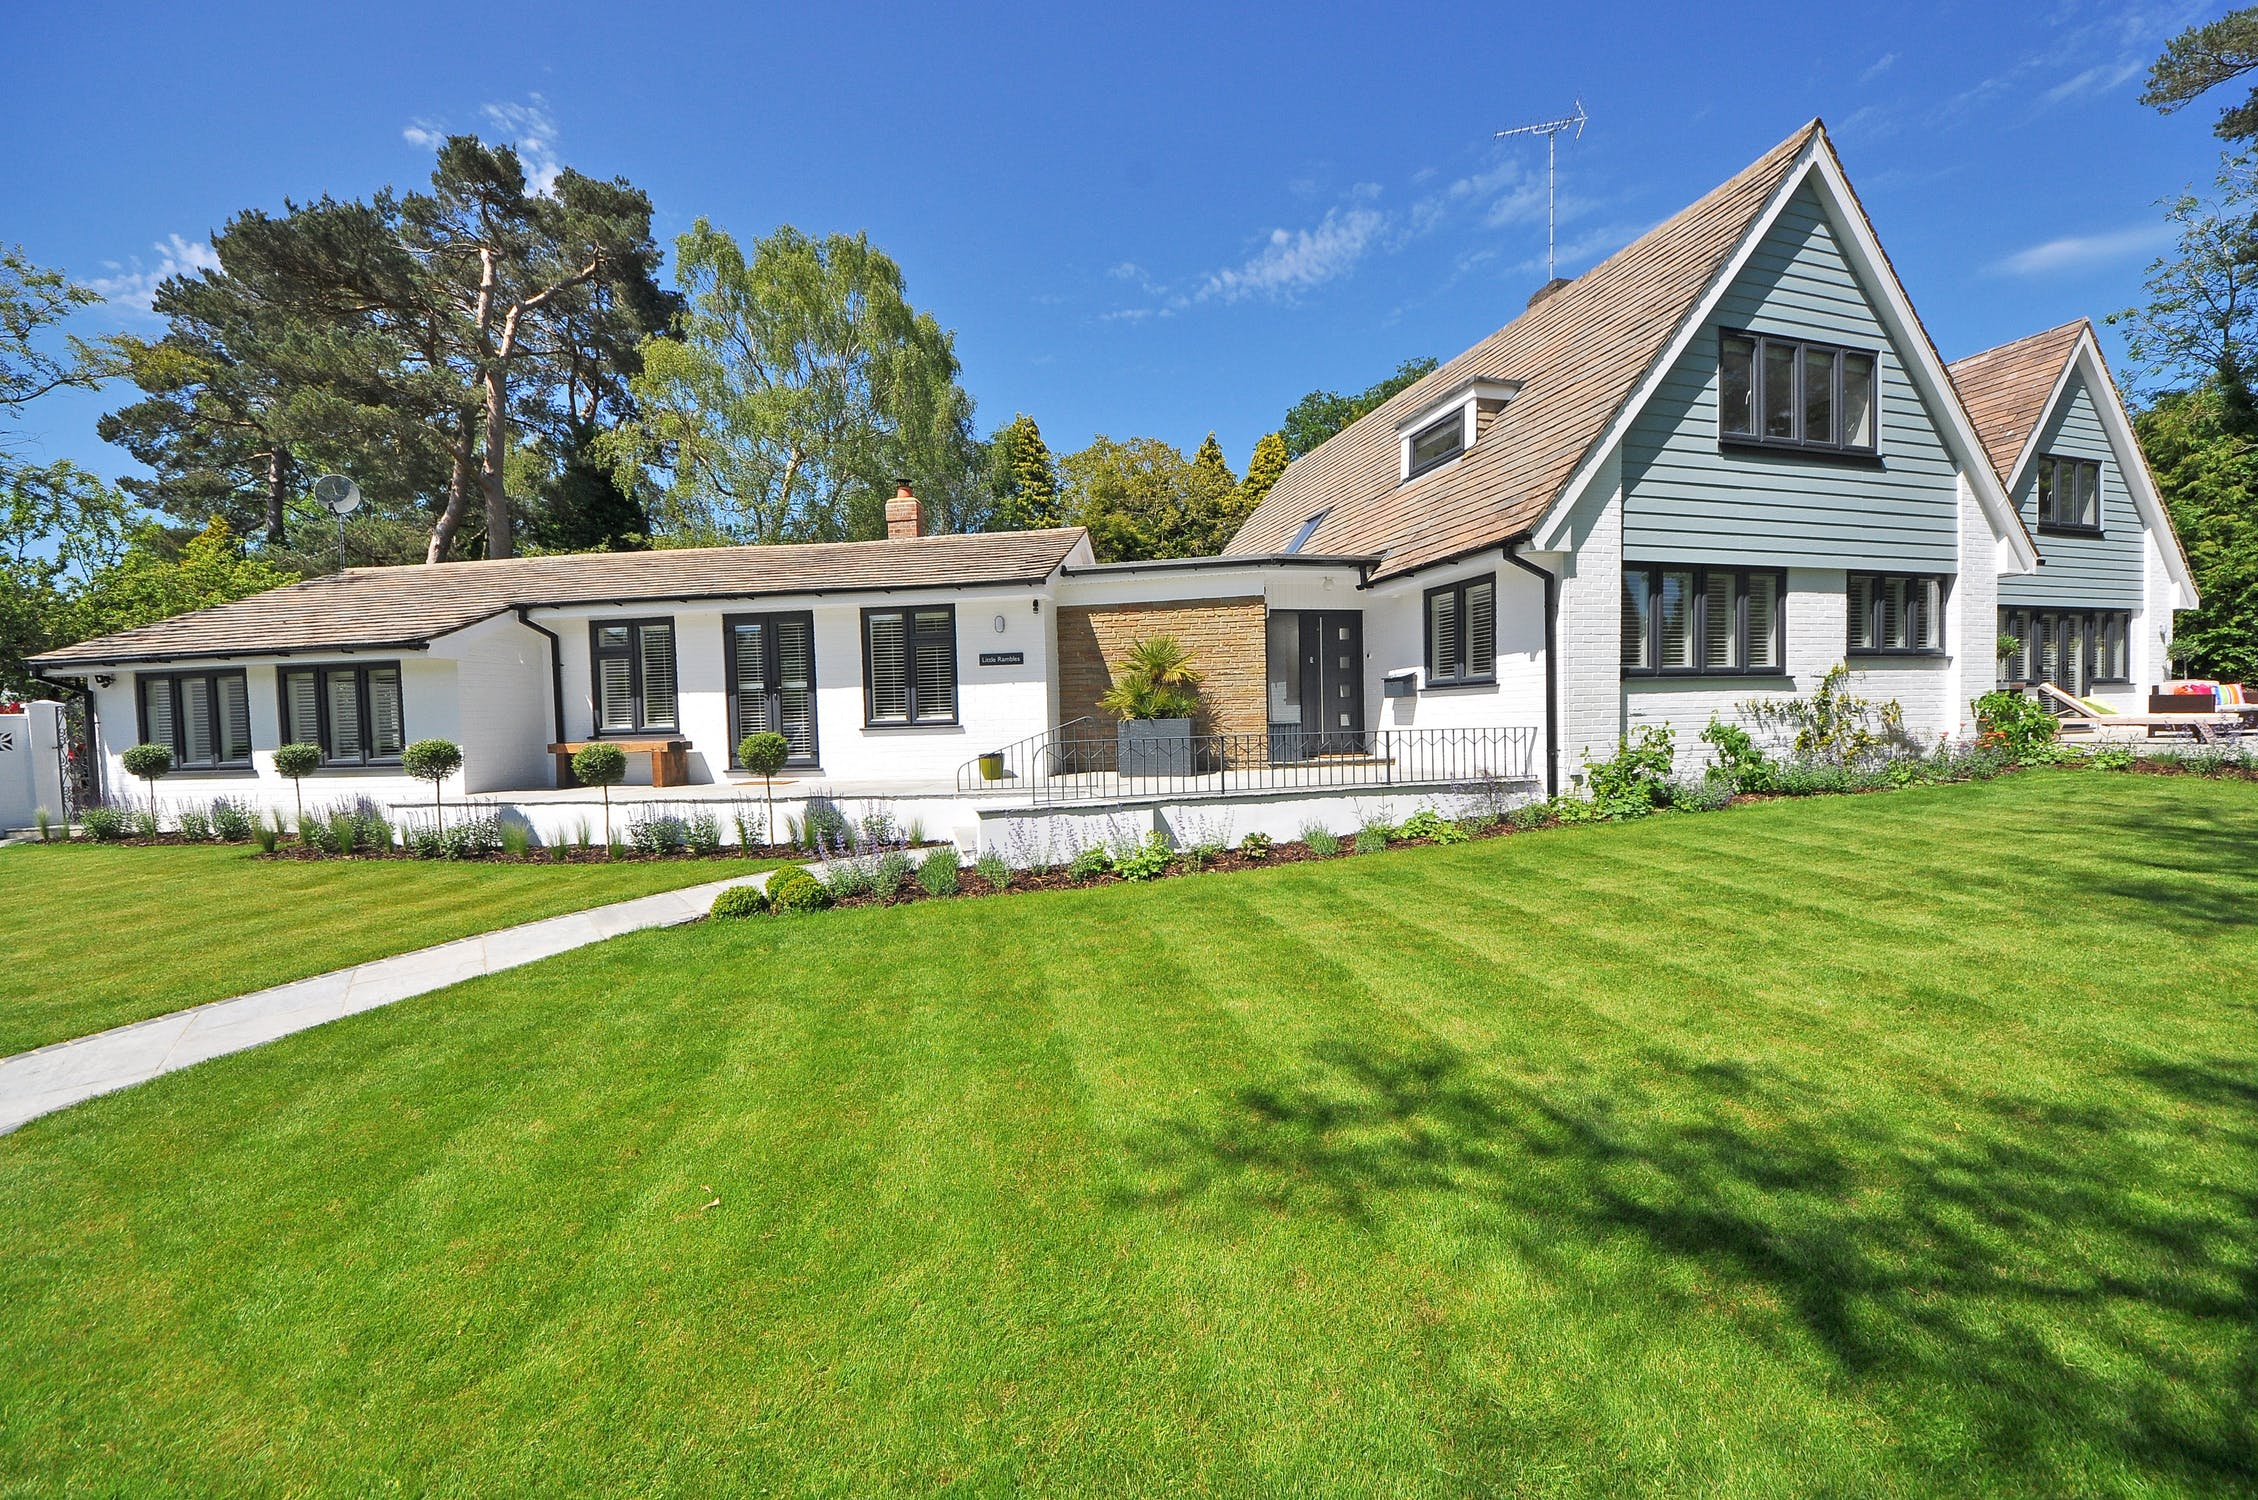 Top Tips to Help You Care for Your Lawn